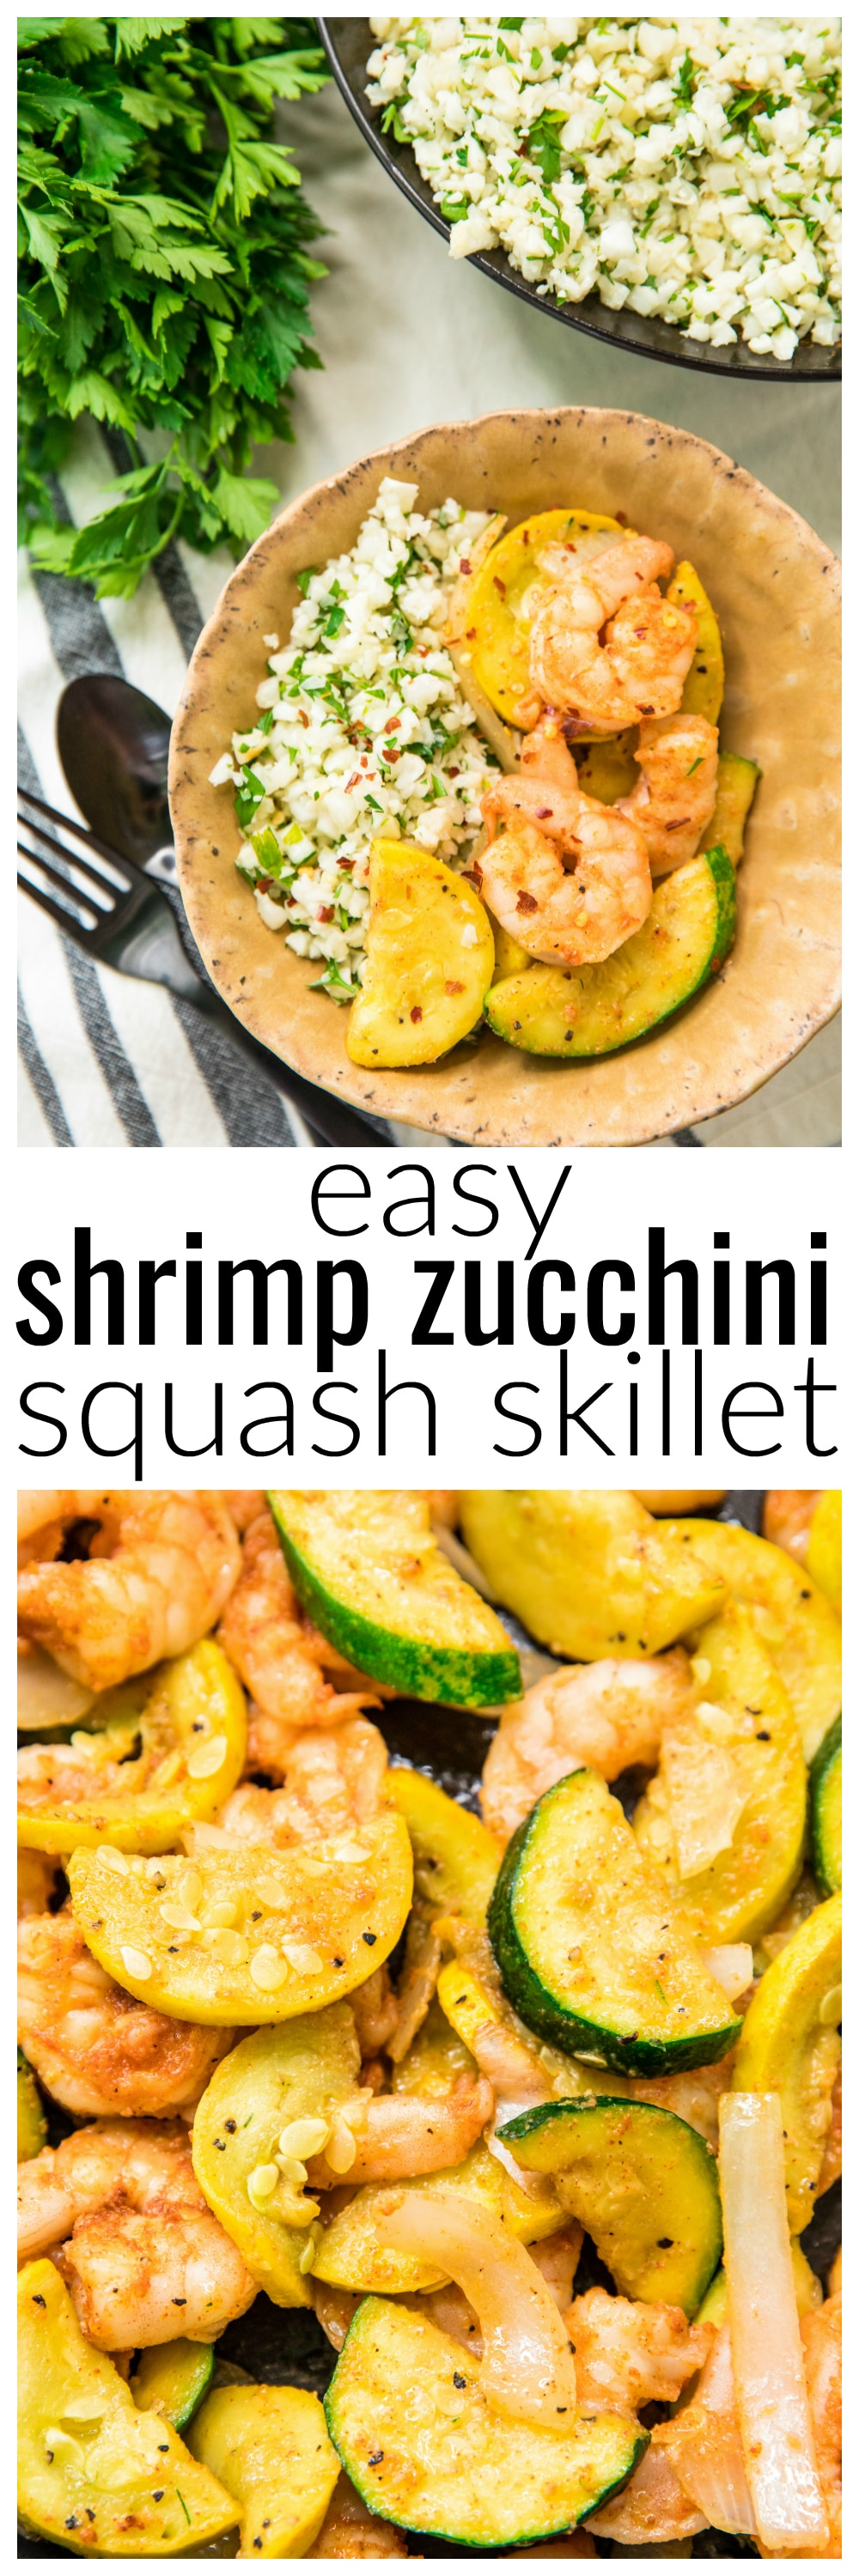 This Easy Shrimp Zucchini Squash Skillet recipe is loaded with veggies, flavorful spices, and shrimp. It's a low-carb, Whole30, gluten-free, and Paleo one-pan meal that is ready in less than 30 minutes.